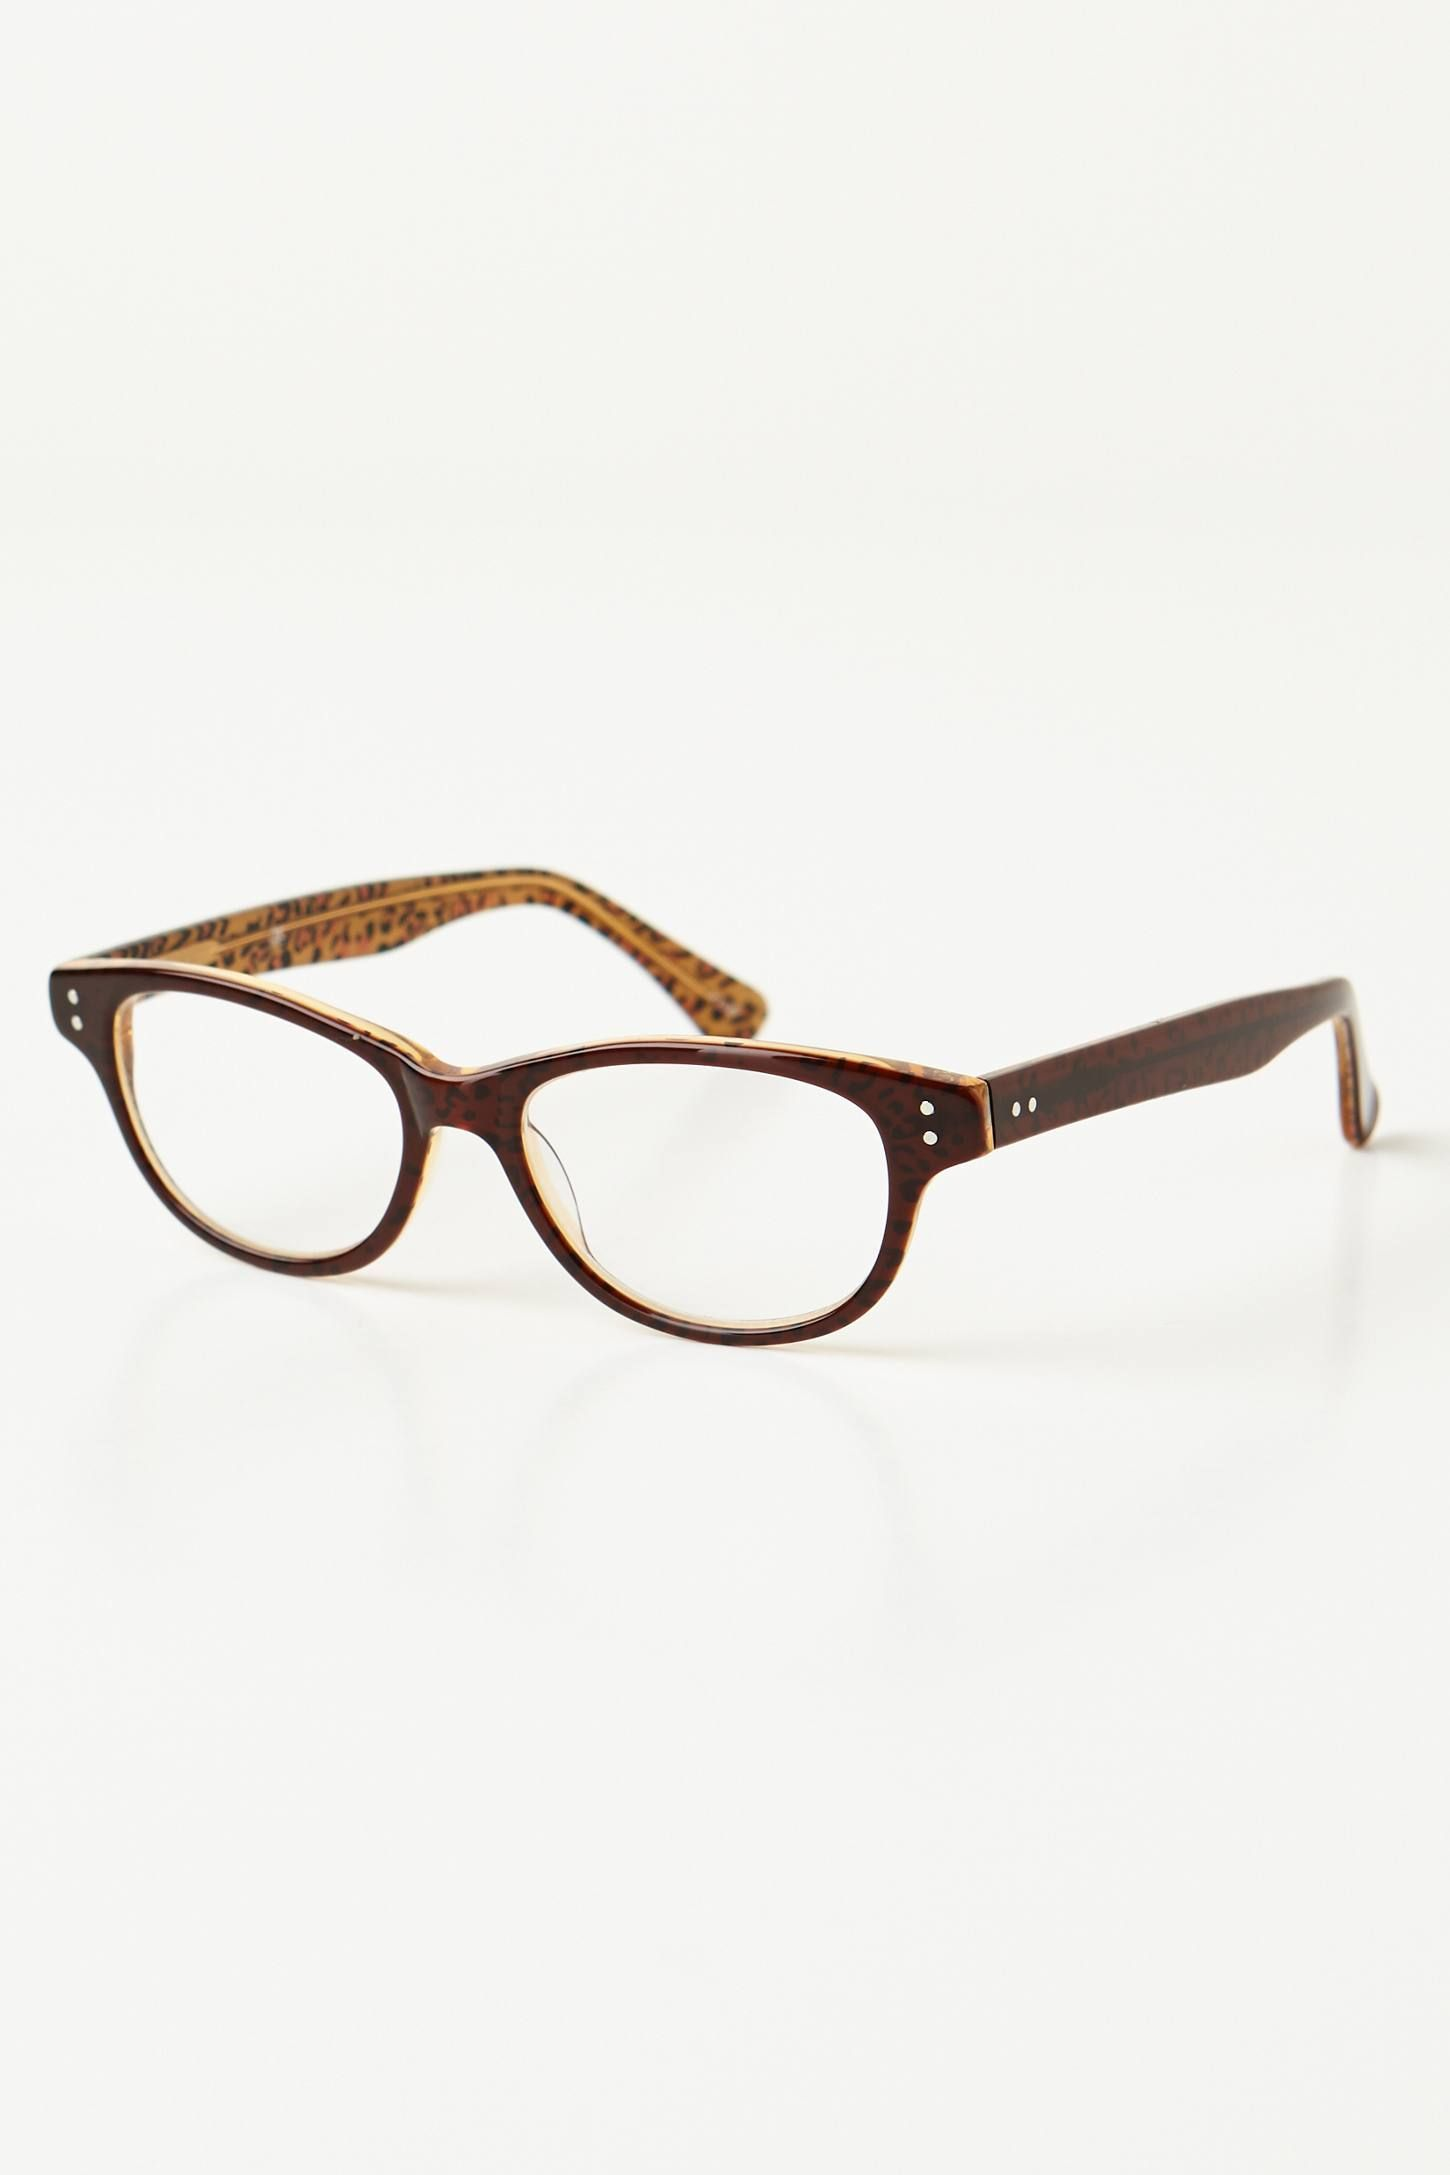 Penny Leopard Readers from anthropologie | aCcesOries | Pinterest